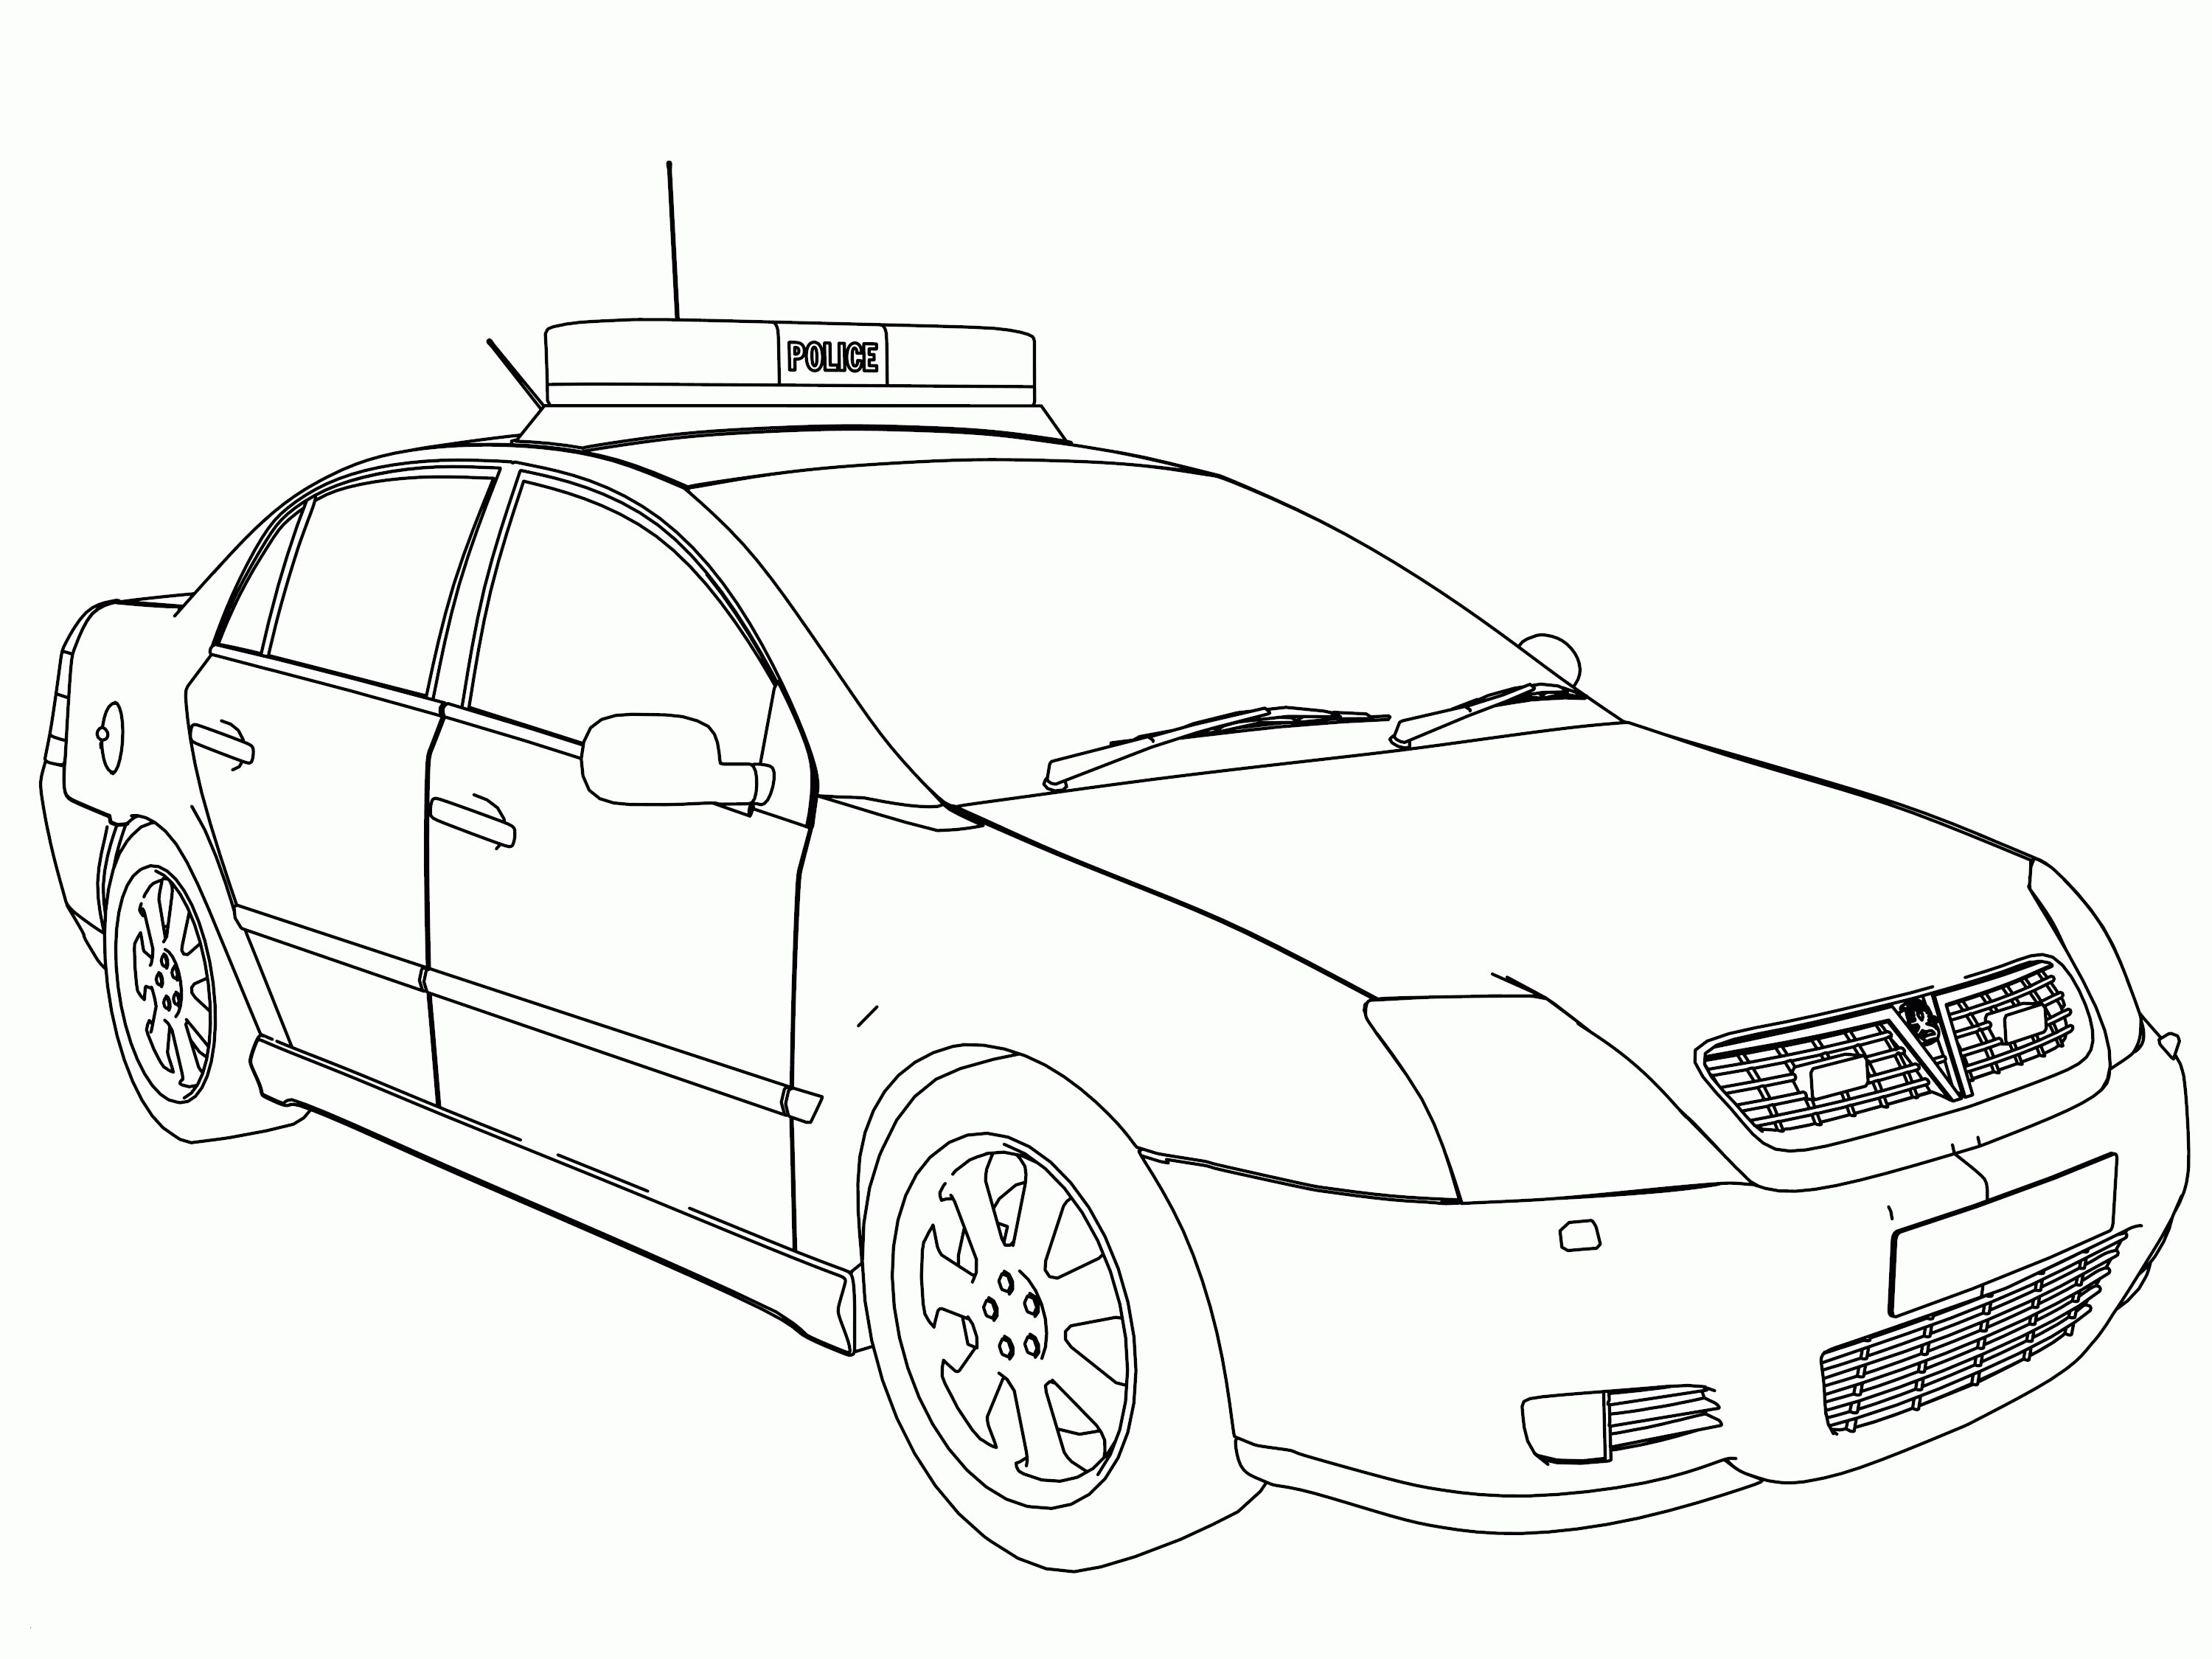 Police Car Coloring Pages  Printable 4l - Free For Children